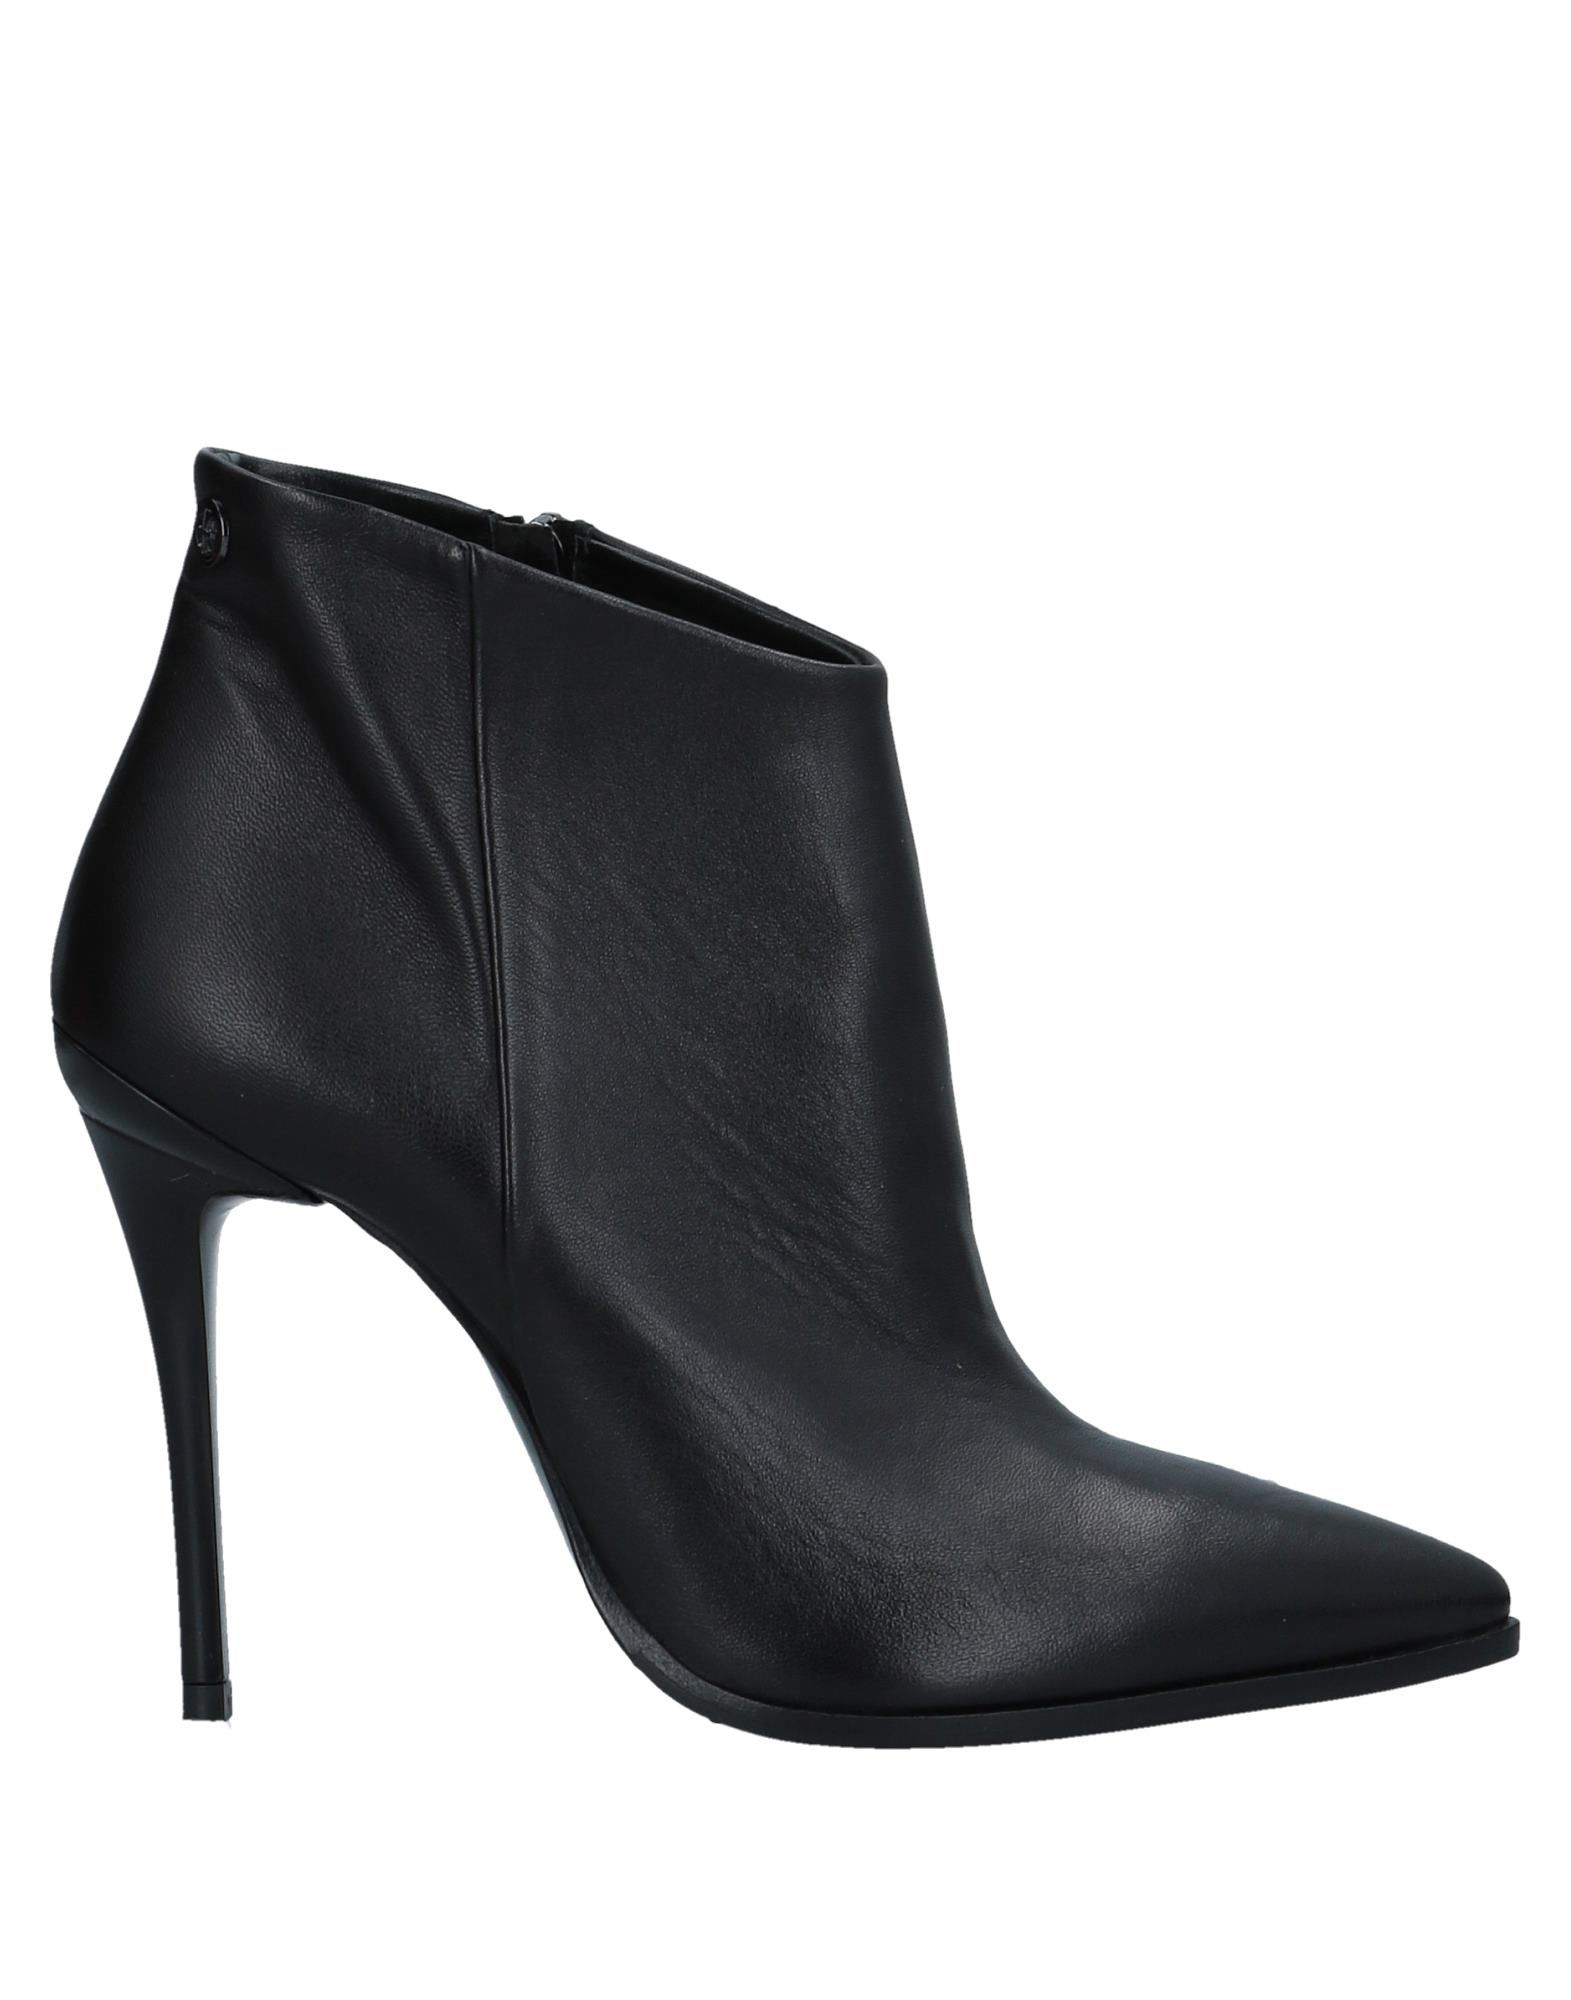 Fabi Ankle Boot Boots - Women Fabi Ankle Boots Boot online on  Australia - 11531077LG 17c9c2